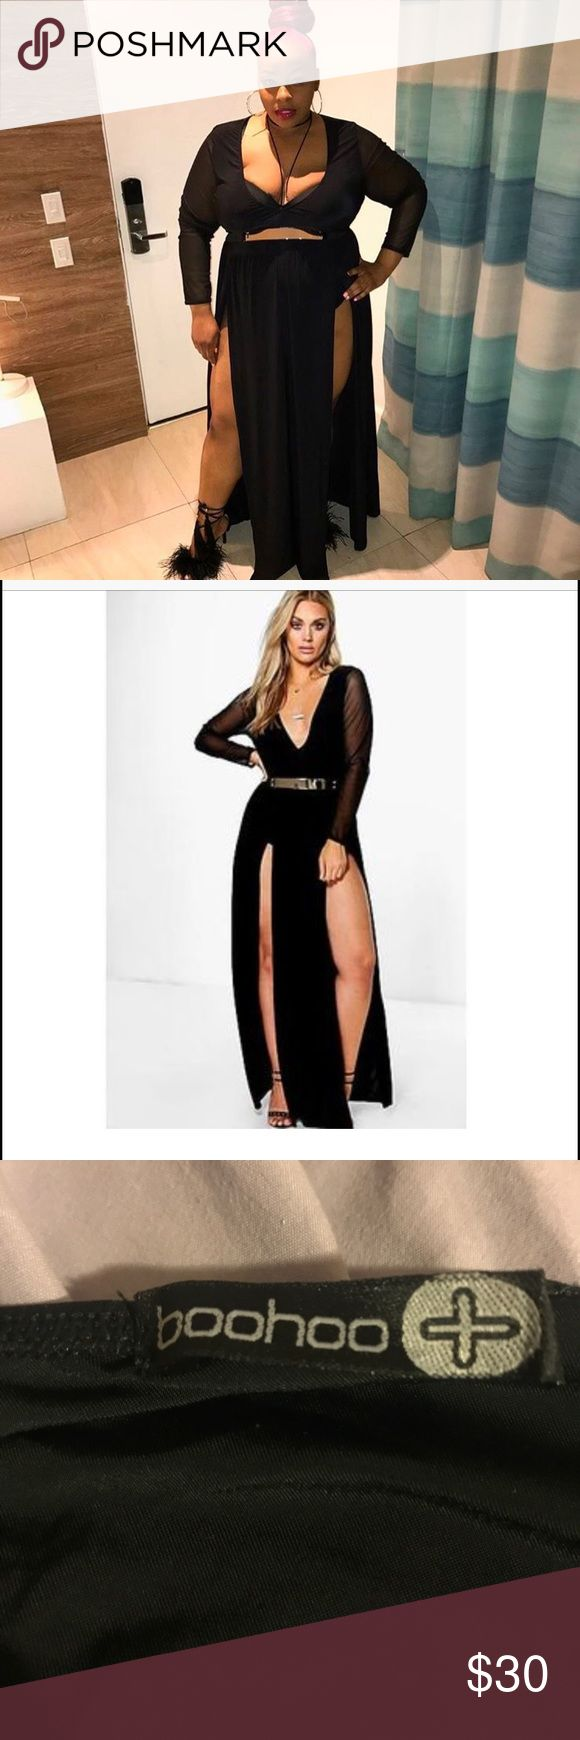 "Black dress Sexy!!!! Trendy!!! BLACK dress!!! Dress Worn Once!!!! Long Sleeve with high splits on each side. Deep Plunge ""Belt included"" Boohoo Plus Dresses Long Sleeve"